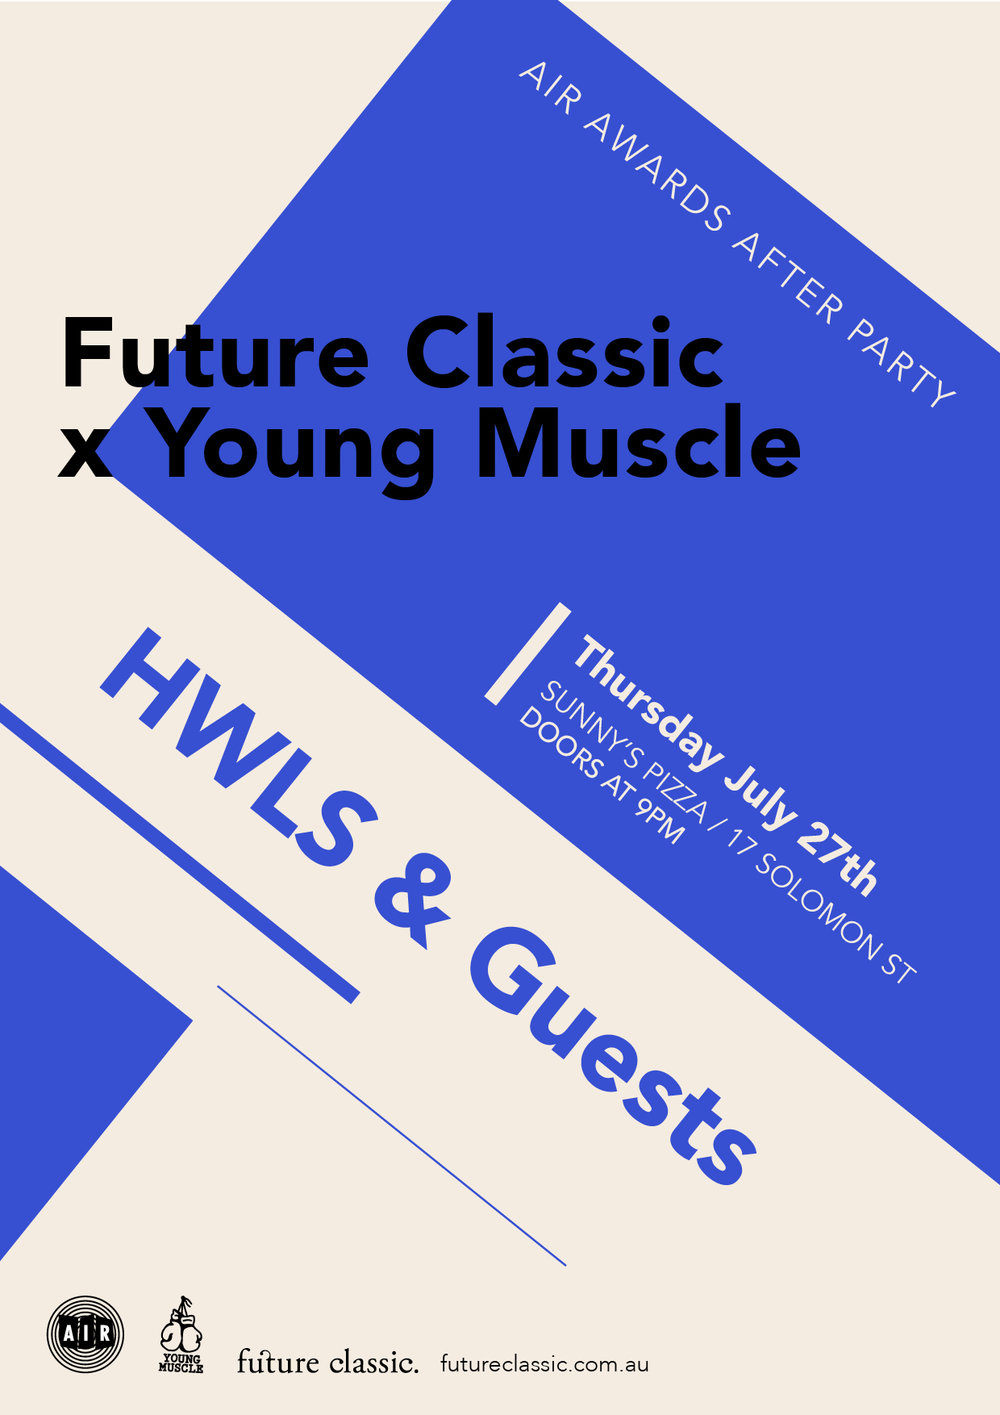 Fc_YoungMuscle_2017_AirAward_AfterParty_Poster_A4_HWLS_4.jpg